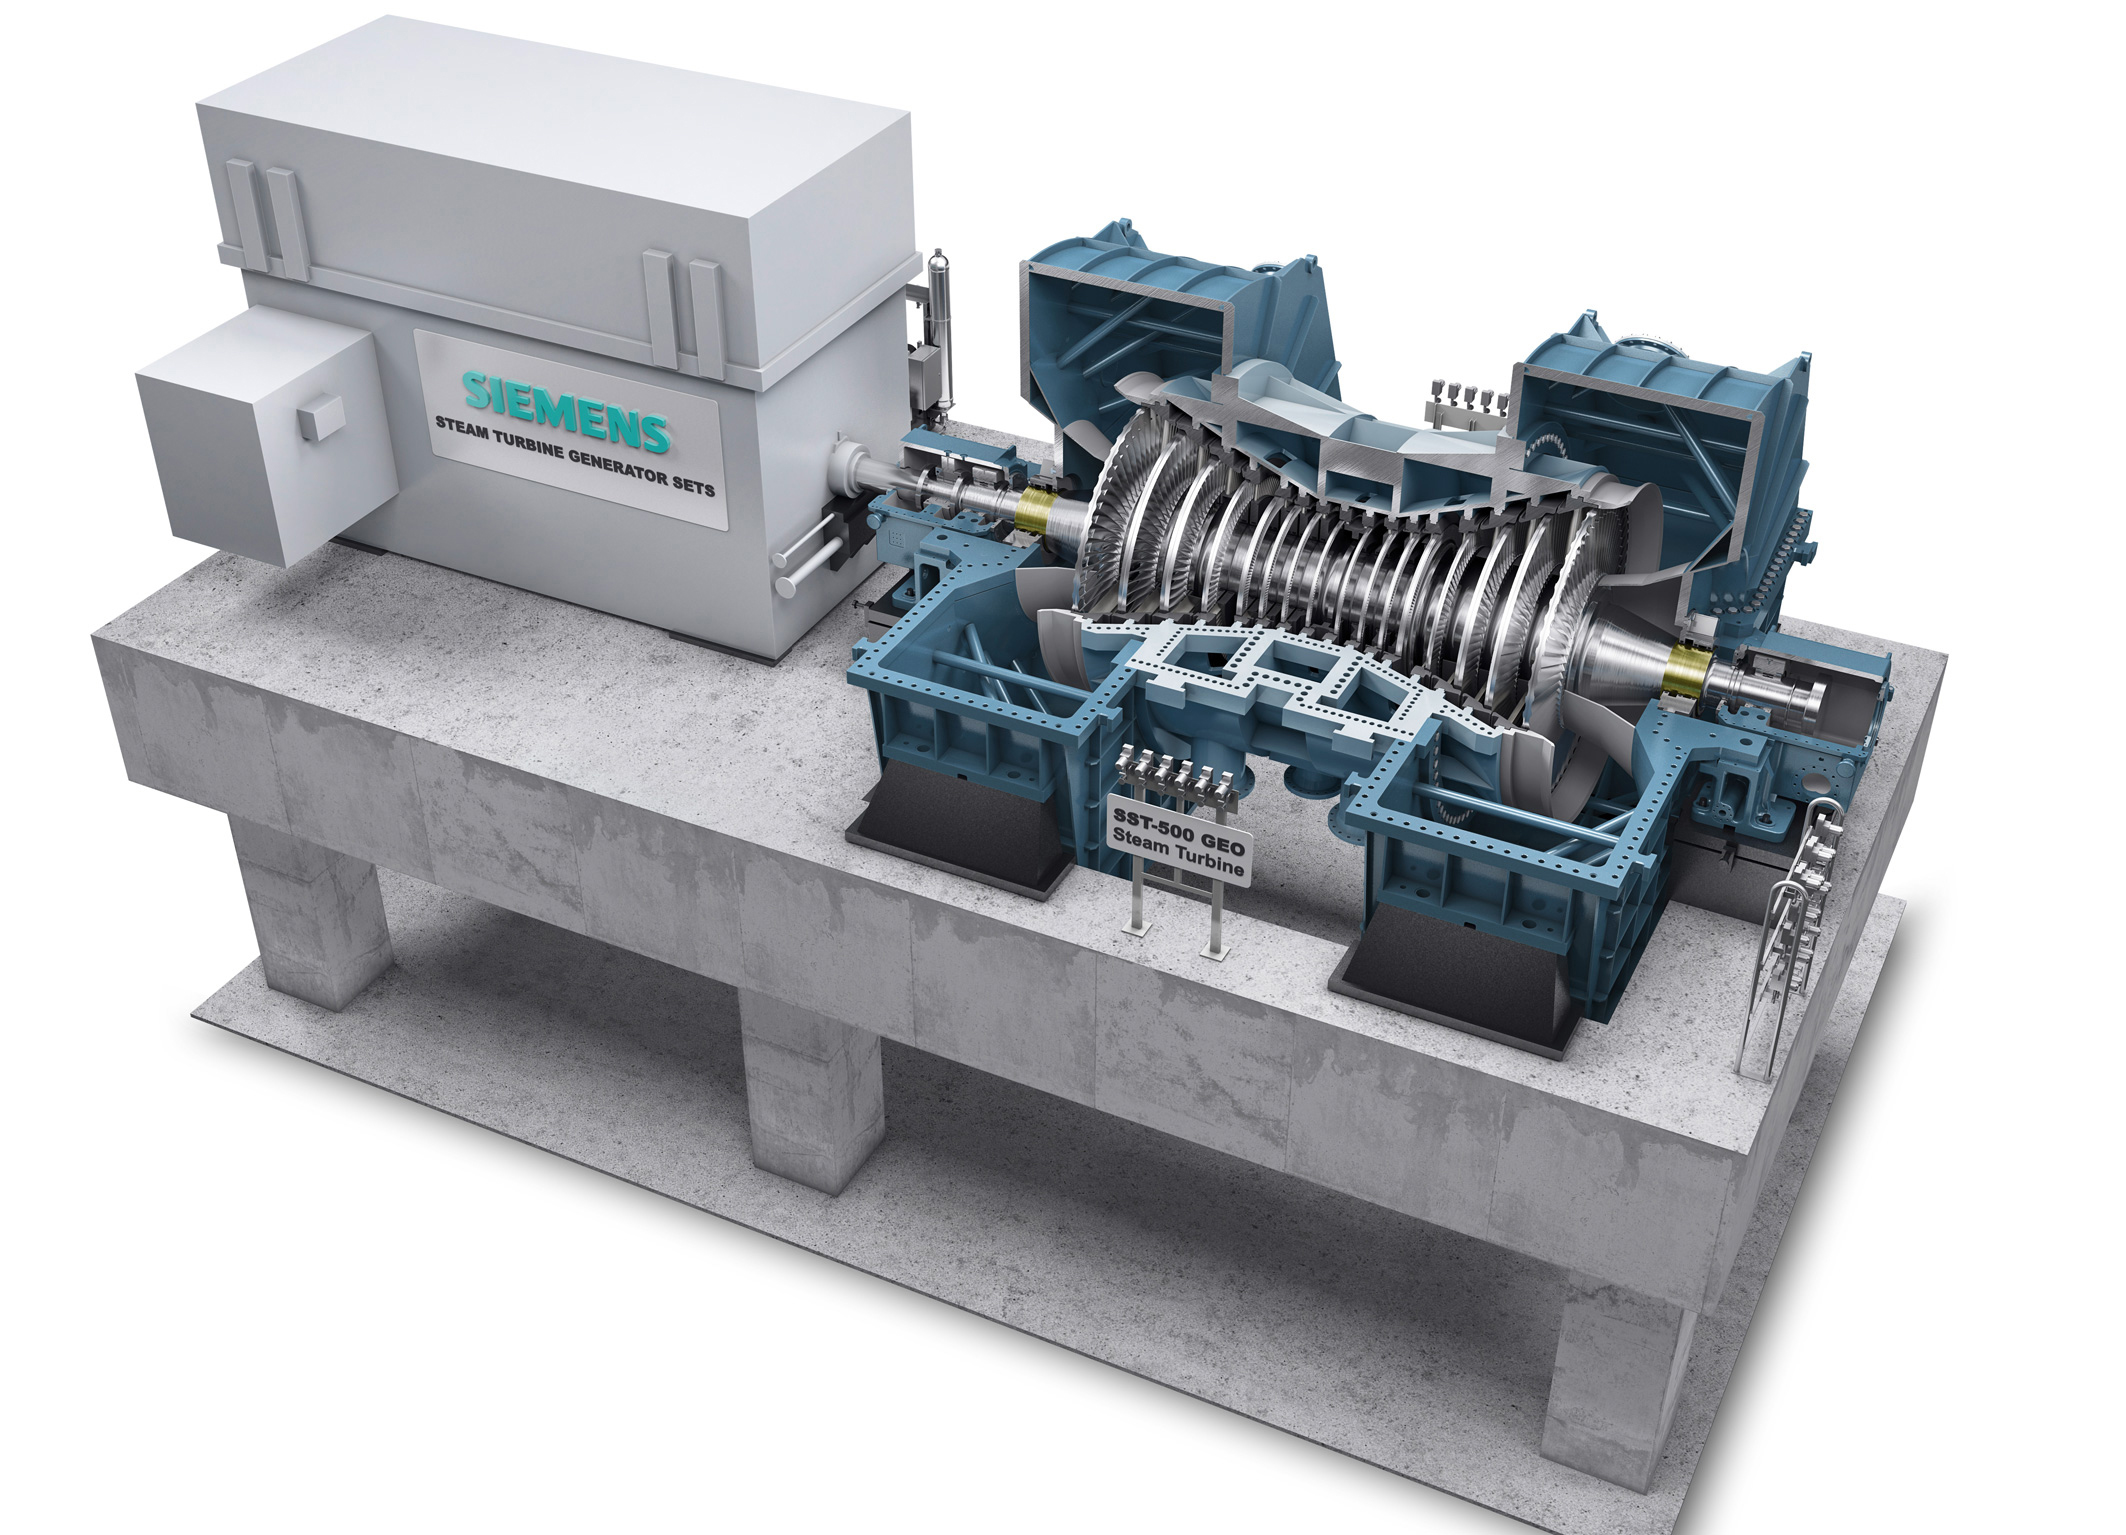 Siemens launches new geothermal turbine for up to 120 MW